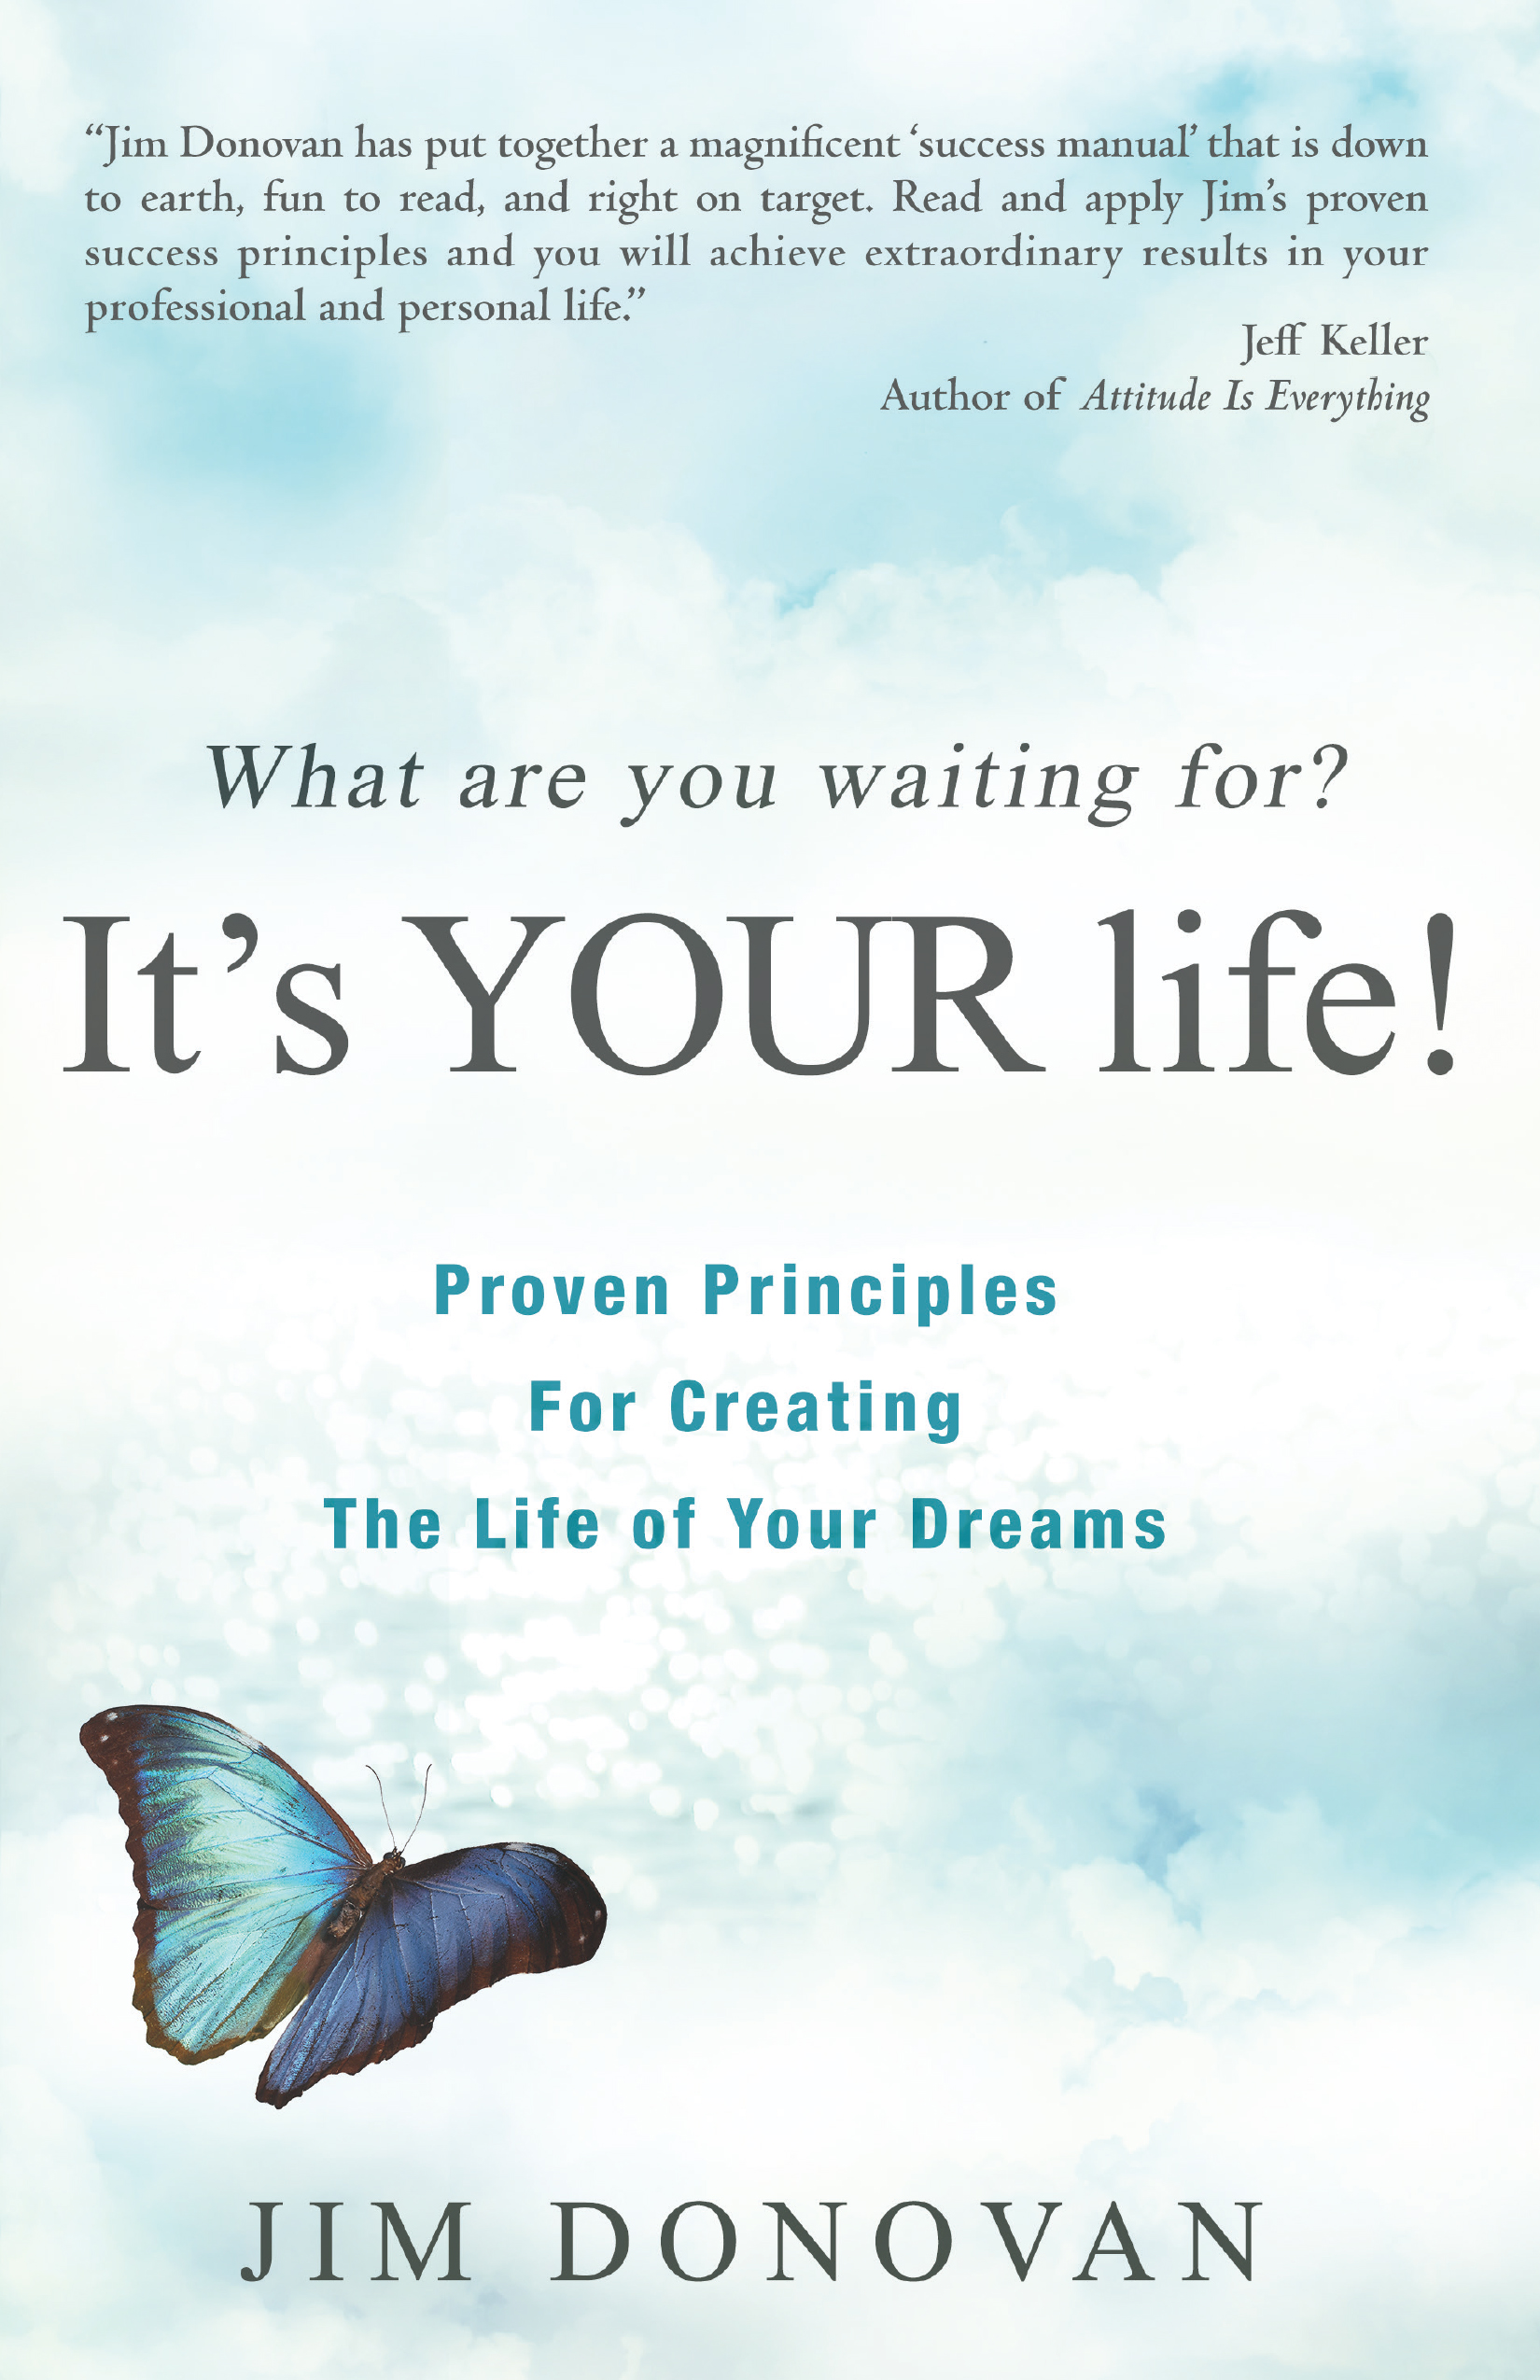 What Are You Waiting For? It's Your Life! - Jim Donovan